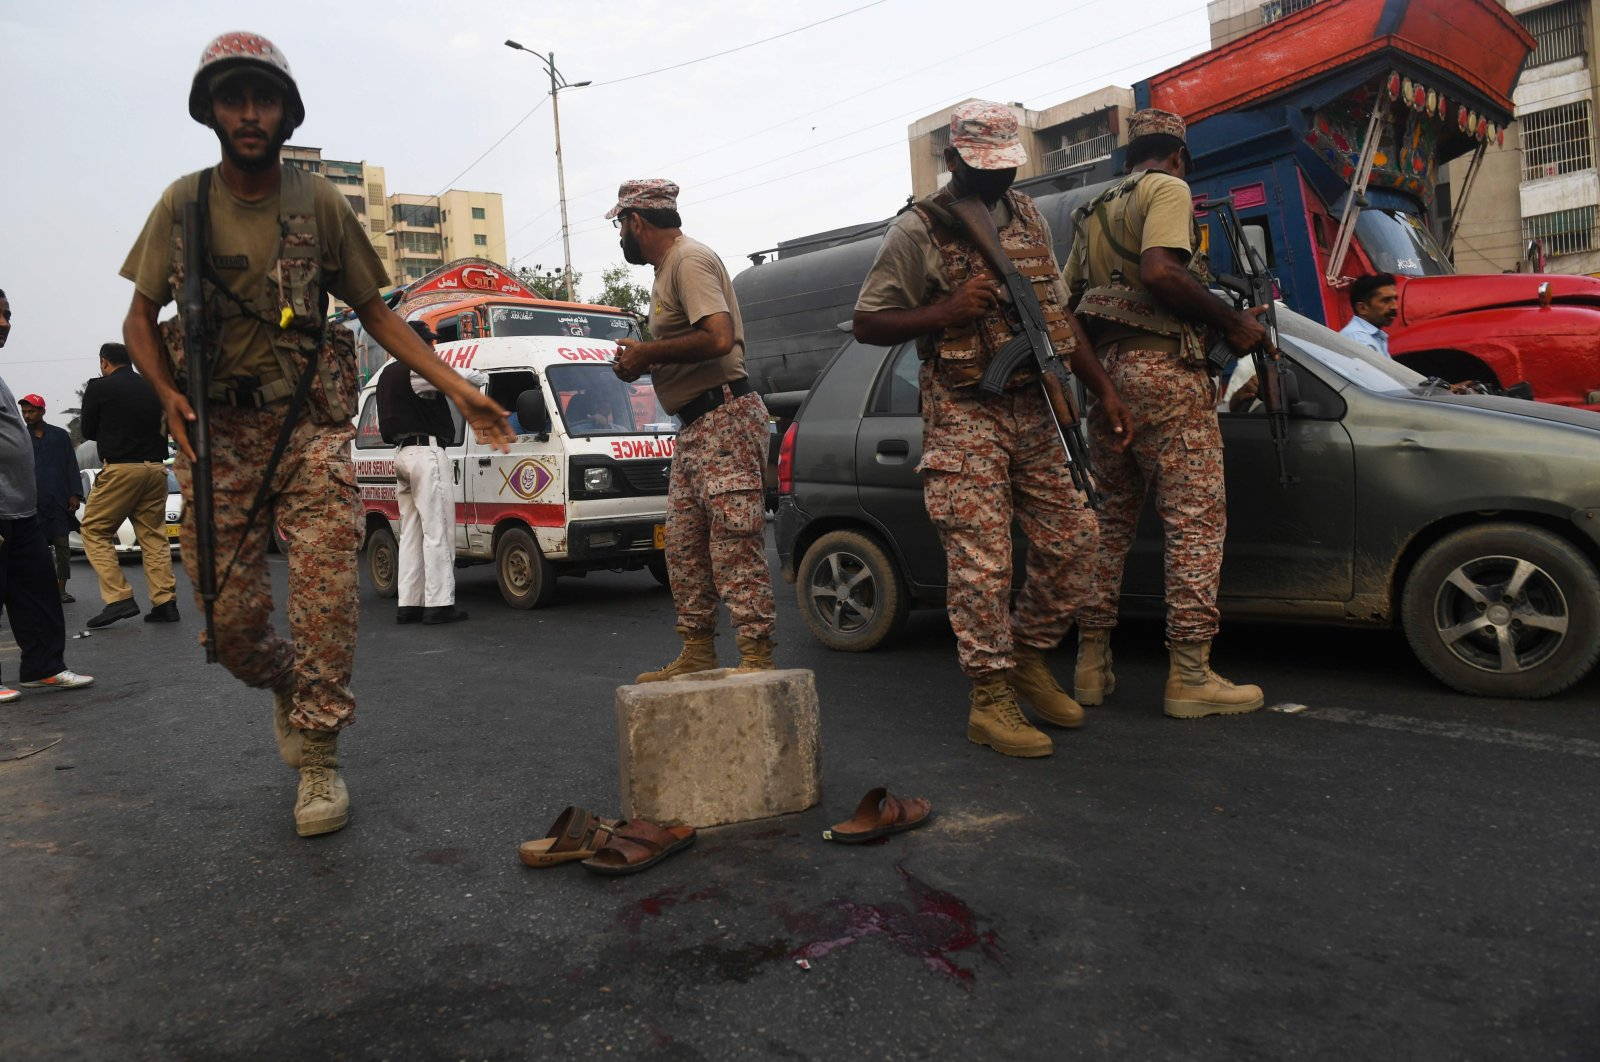 Paramilitary soldiers cordon off a the after an unidentified man threw a cracker during a rally, Karachi, Aug. 5, 2020. (AFP Photo)